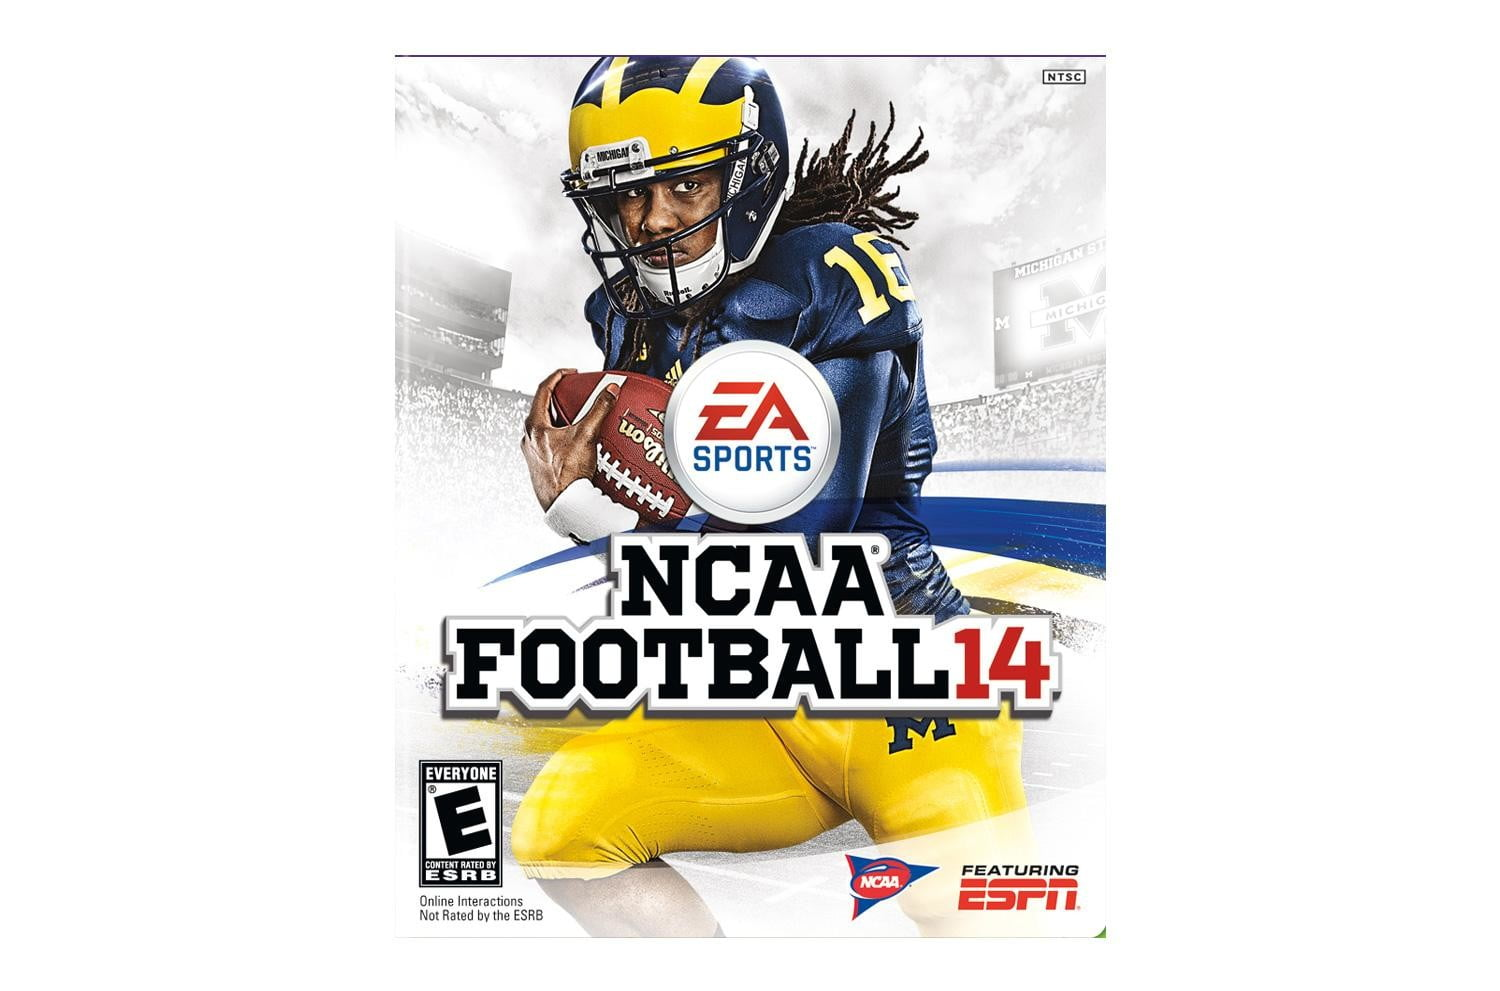 NCAA-Football-14-cover-art